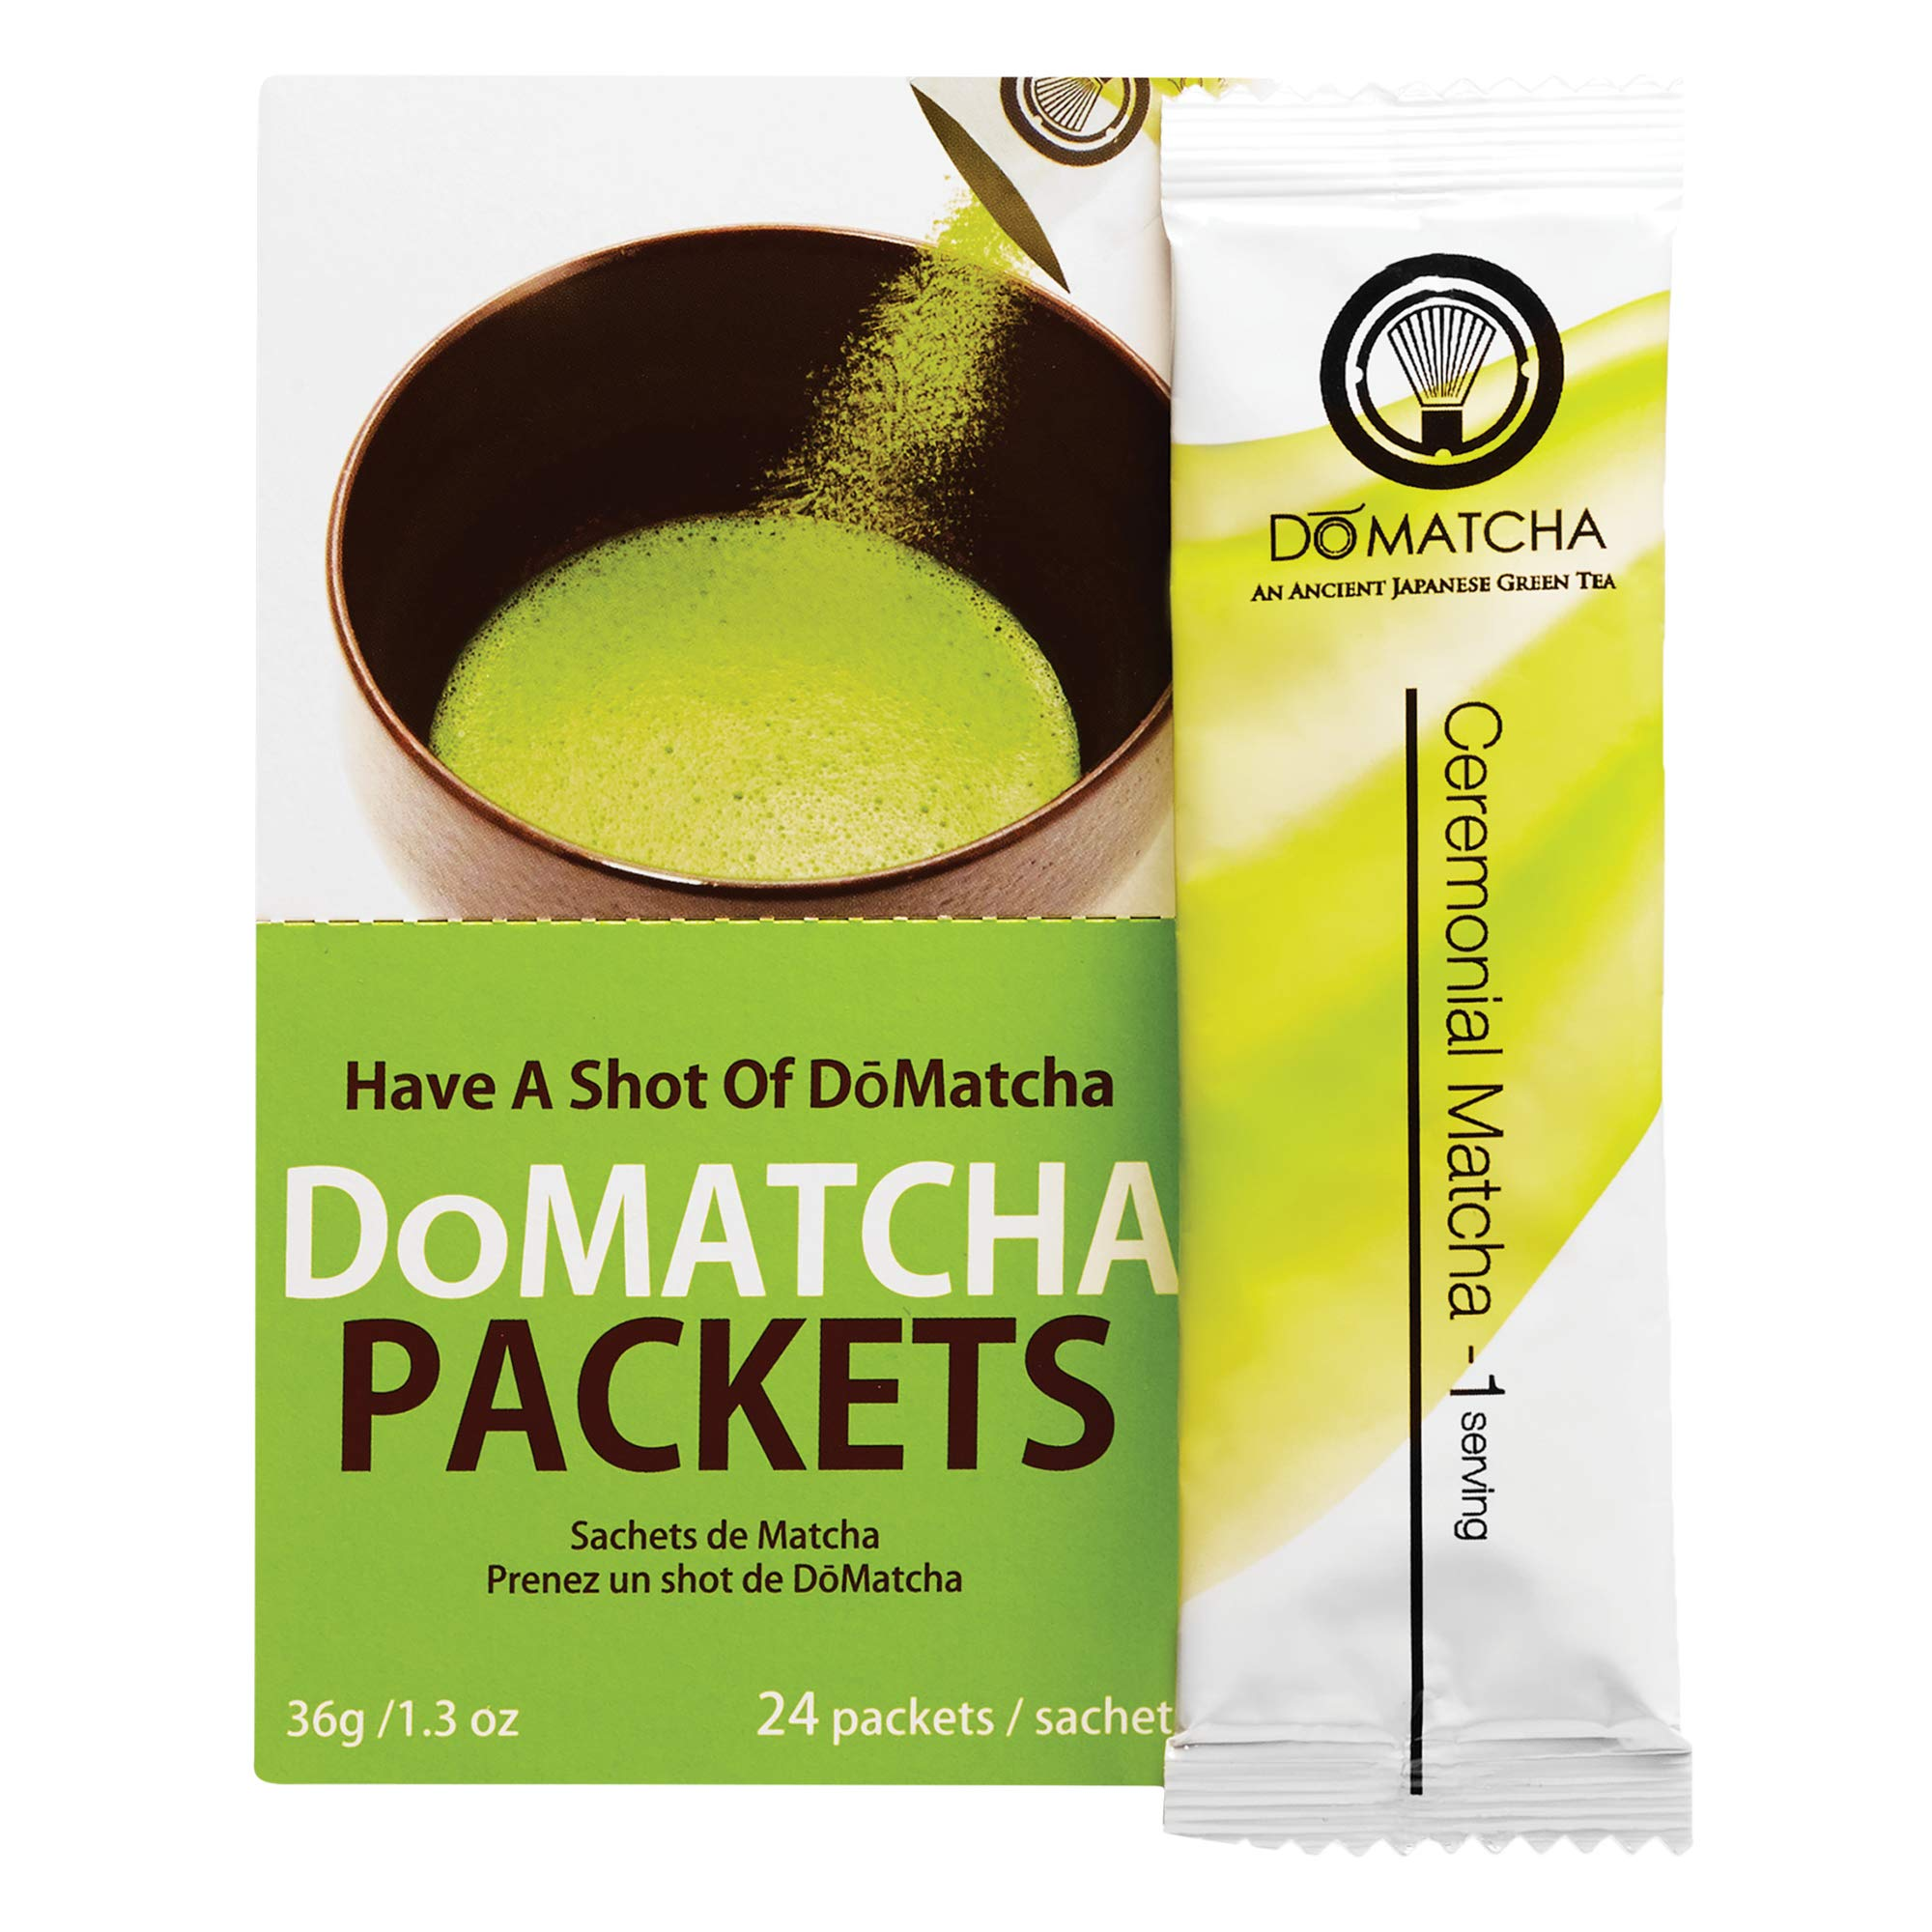 DoMatcha - Ceremonial Green Tea Matcha Powder, Travel Friendly, Natural Source of Antioxidants, Caffeine, and L-Theanine, Promotes Focus and Relaxation, Kosher, 24 Packets